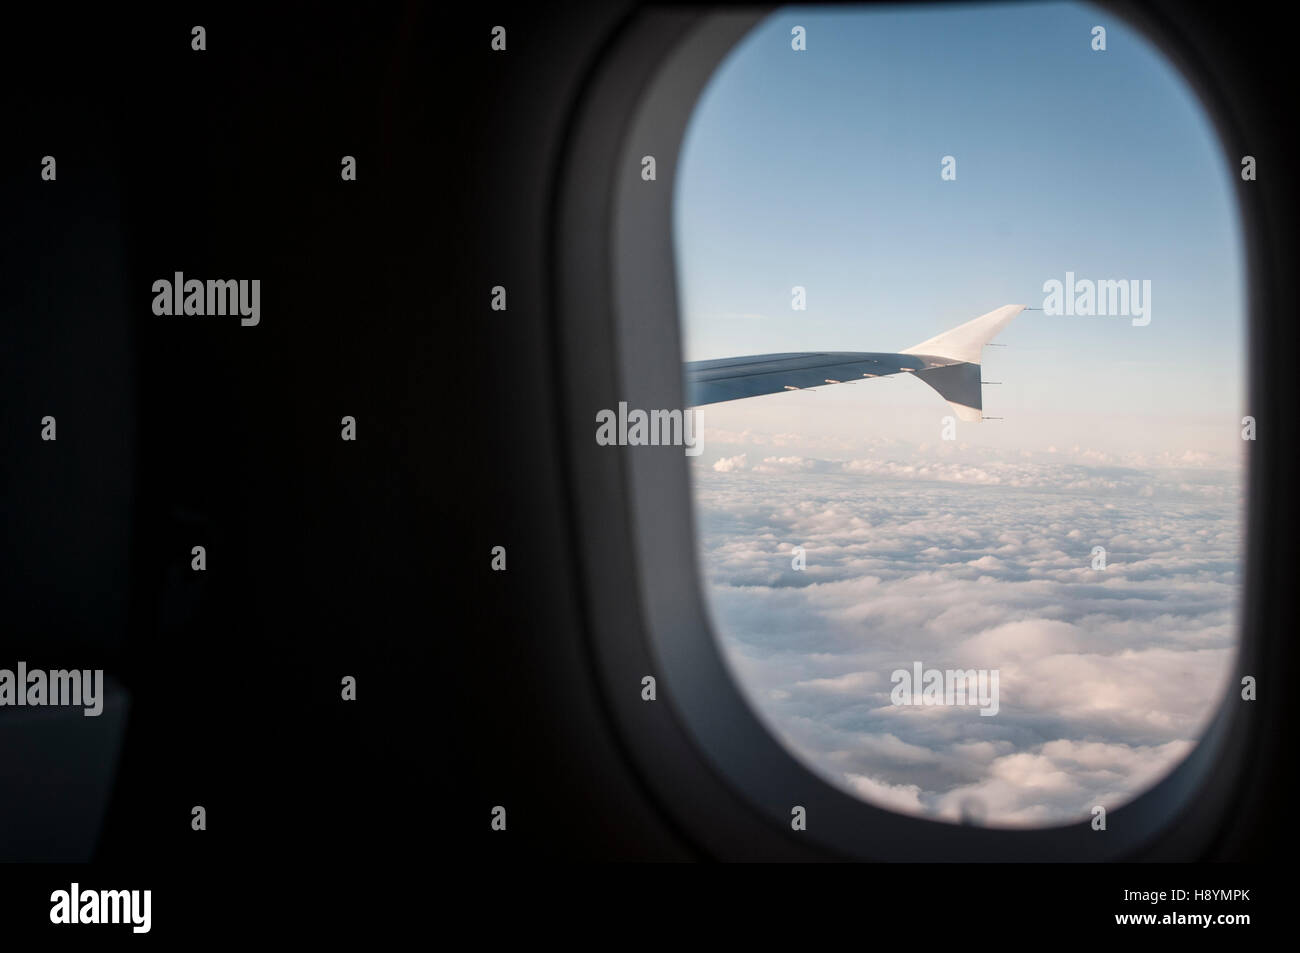 Looking out of an aeroplane window - Stock Image